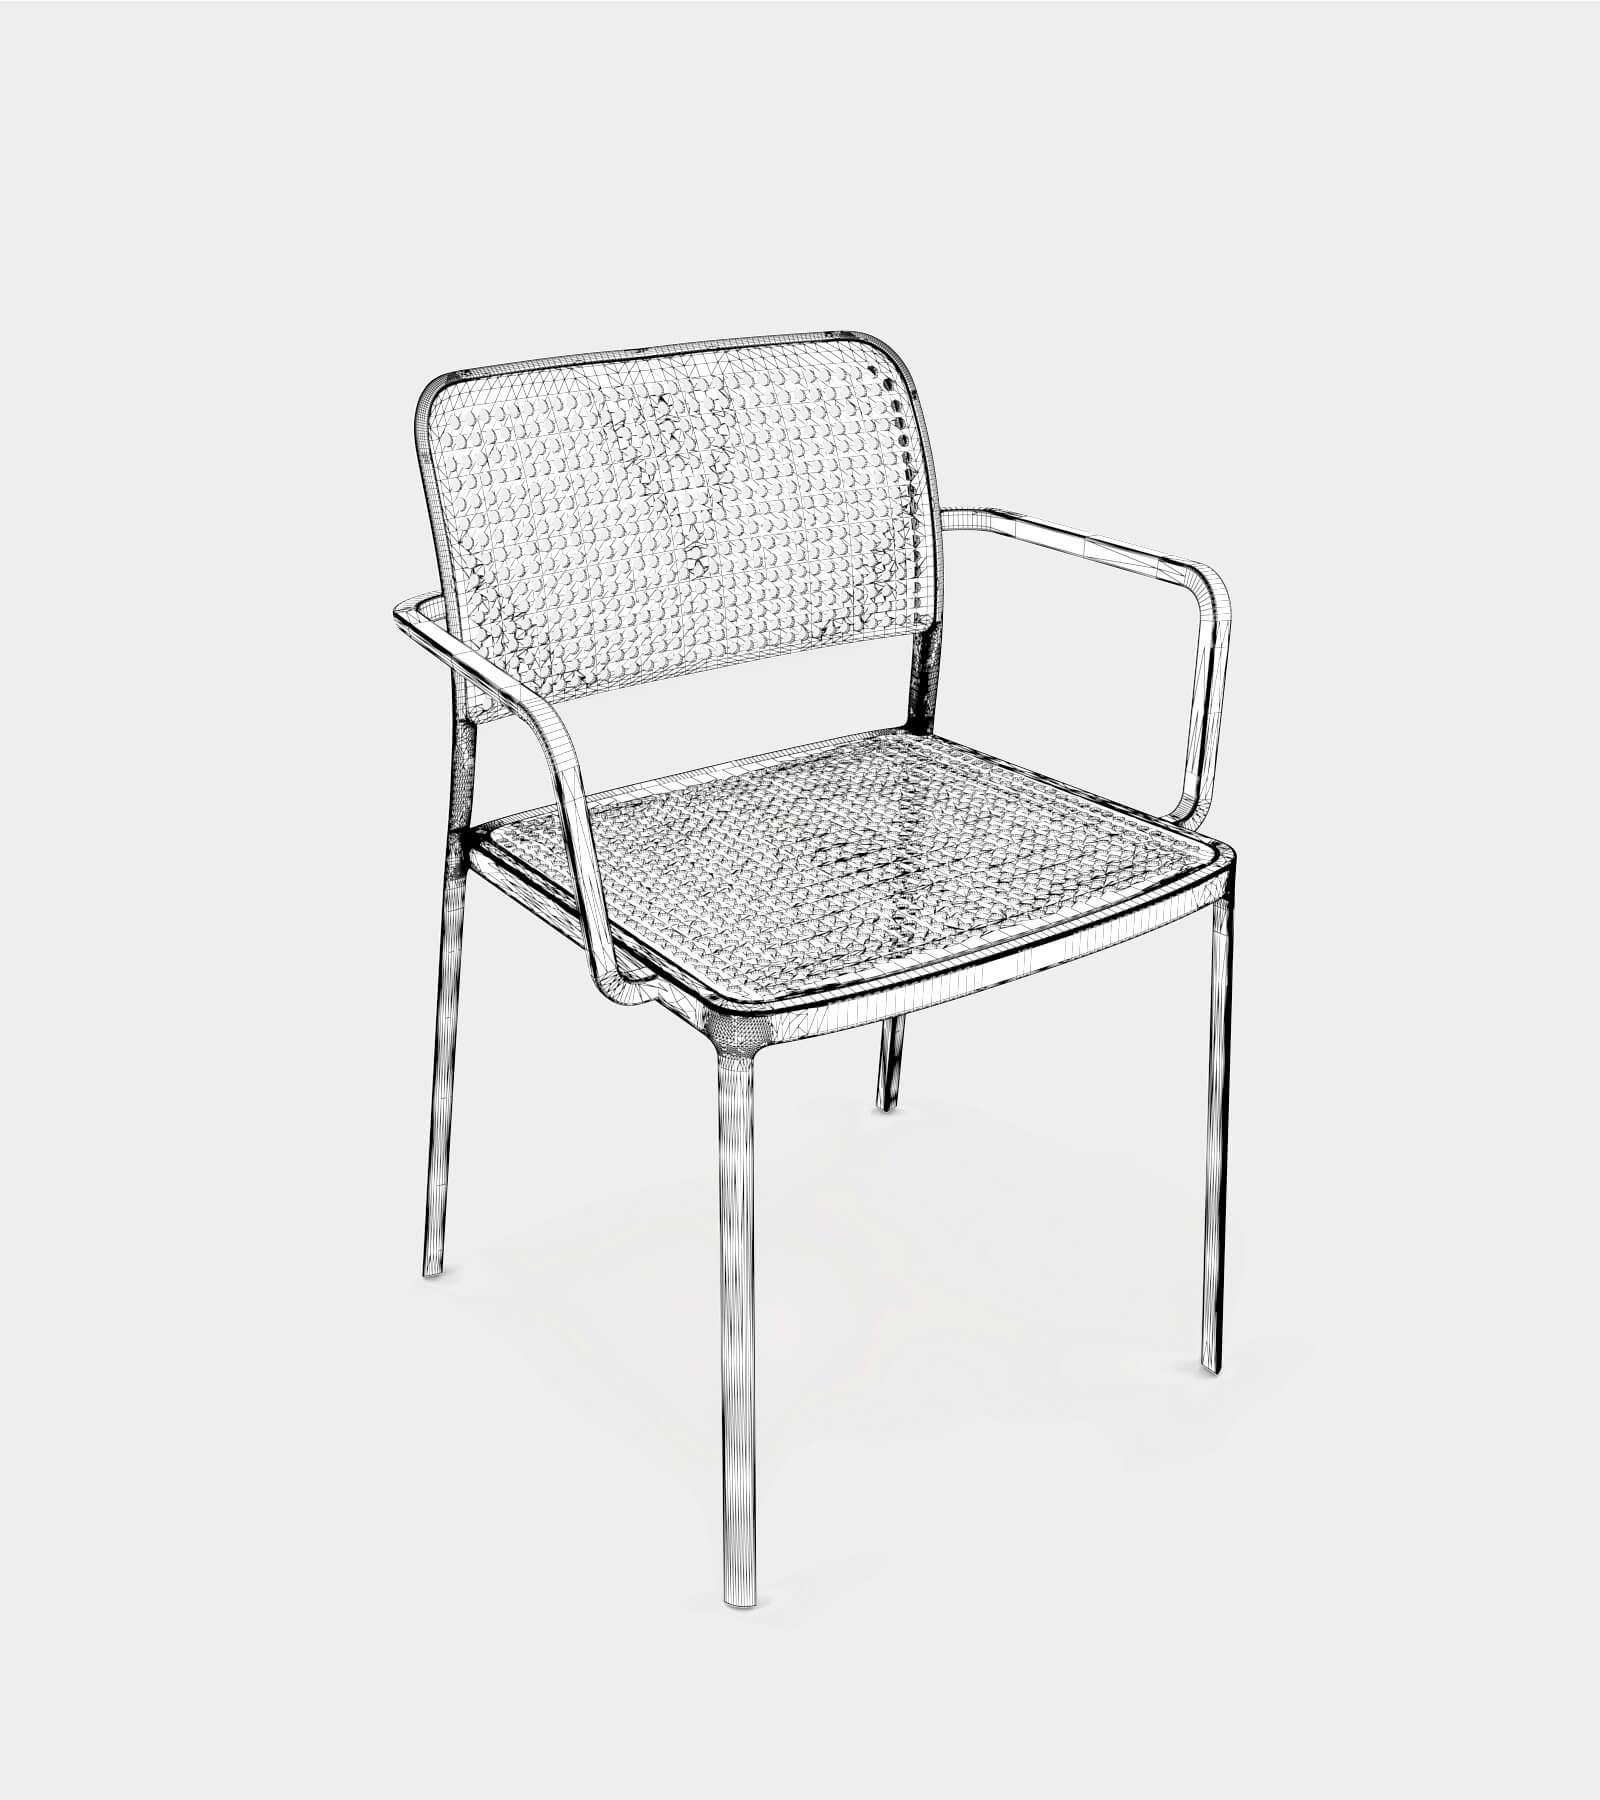 Aluminium armchair for interior and exterior-wire-1 3D Model